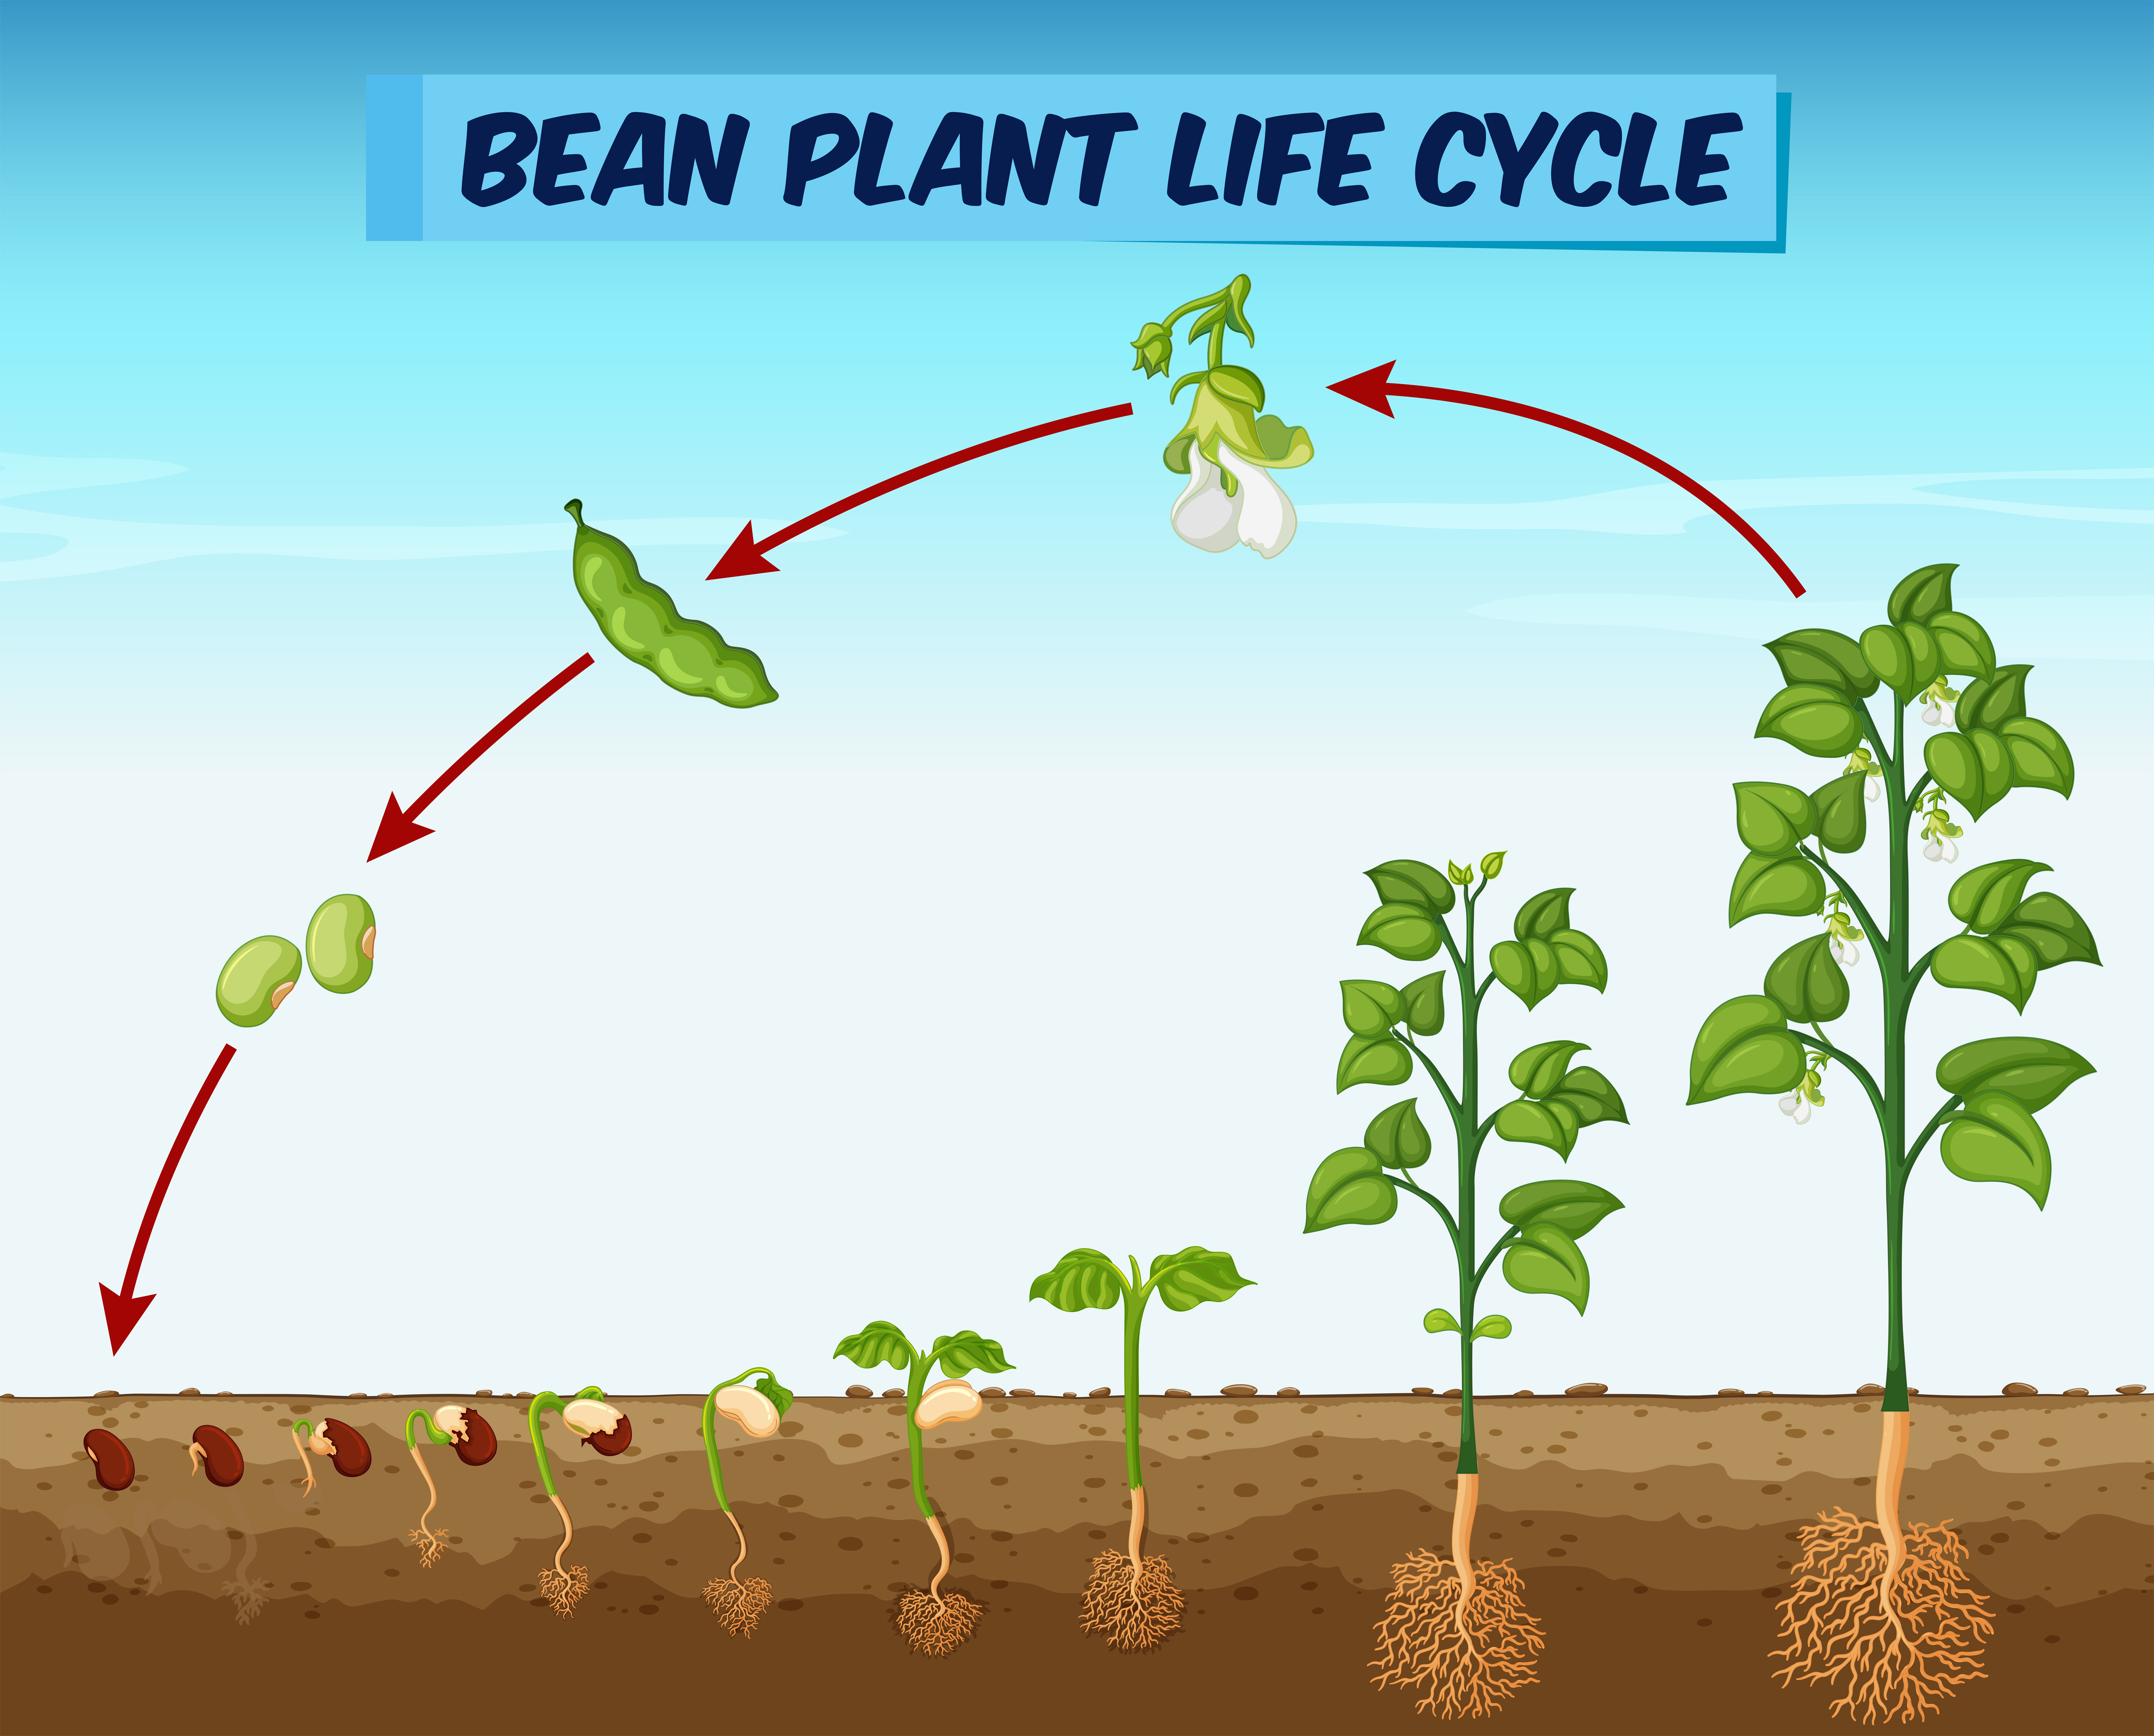 Diagram showing bean plant life cycle 370175 - Download ...